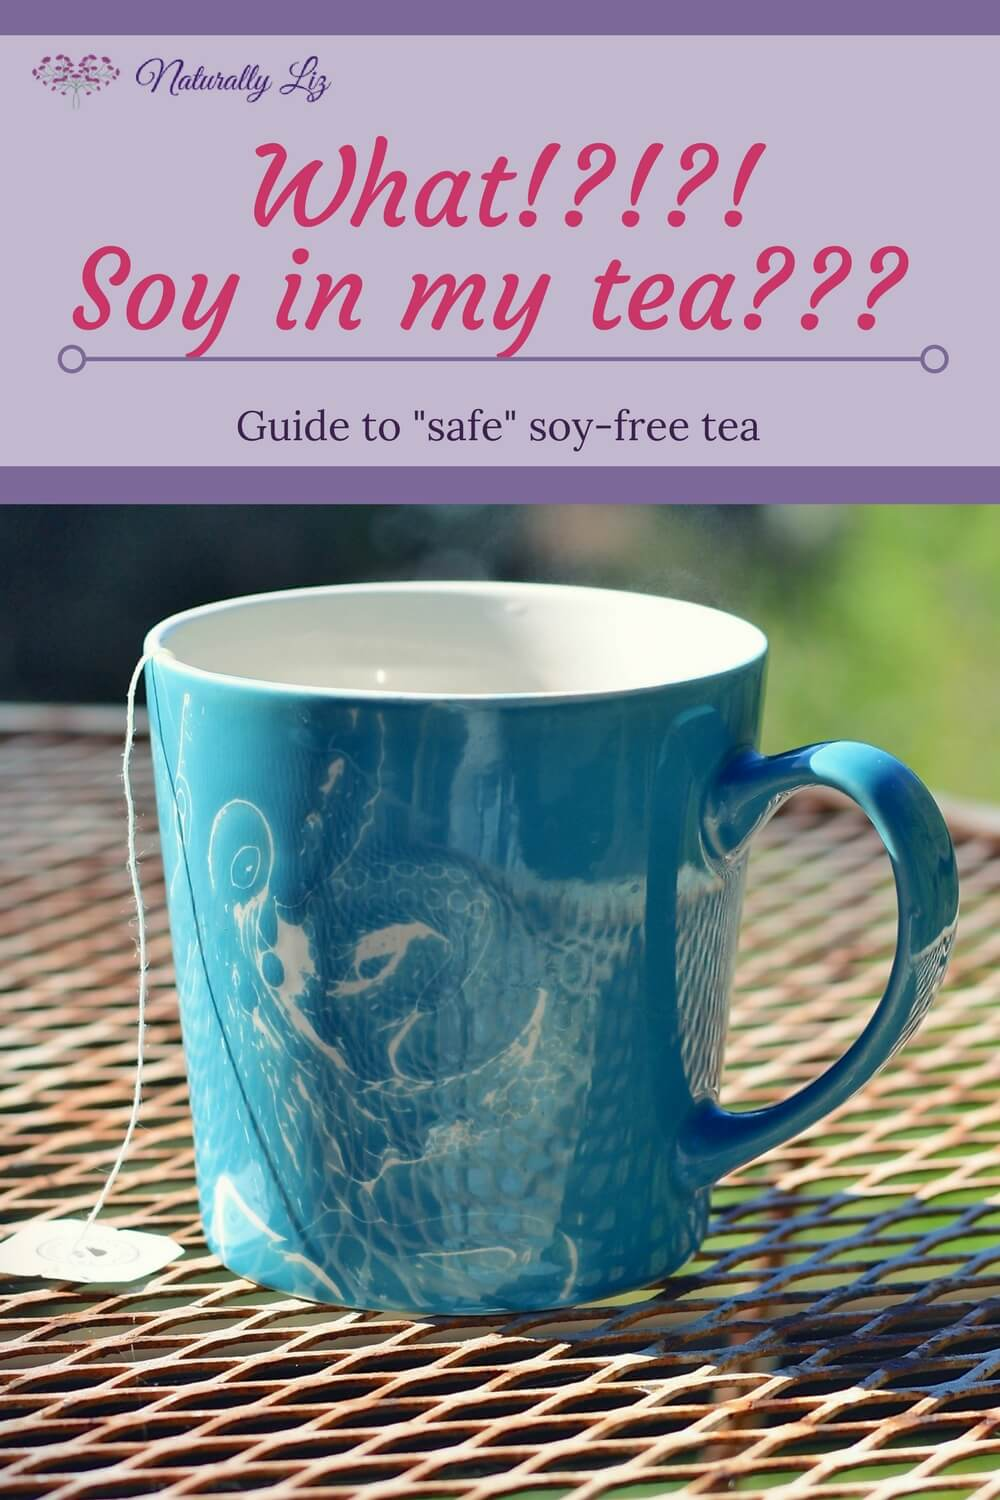 What?!?!? Soy in my tea? No!!!!